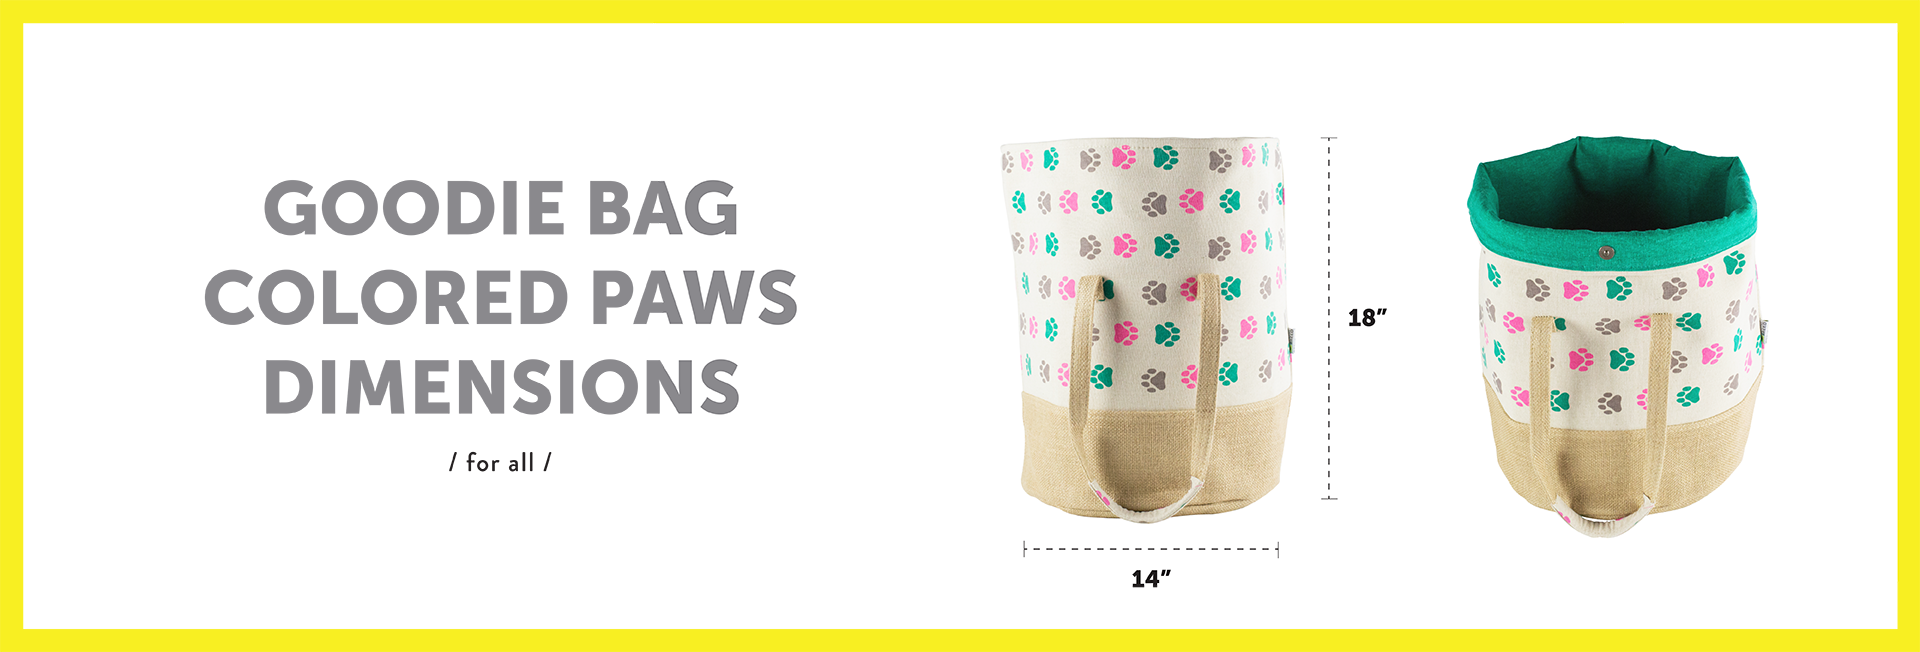 dimensions-goodie-bag-colored-paws-for-dogs-english